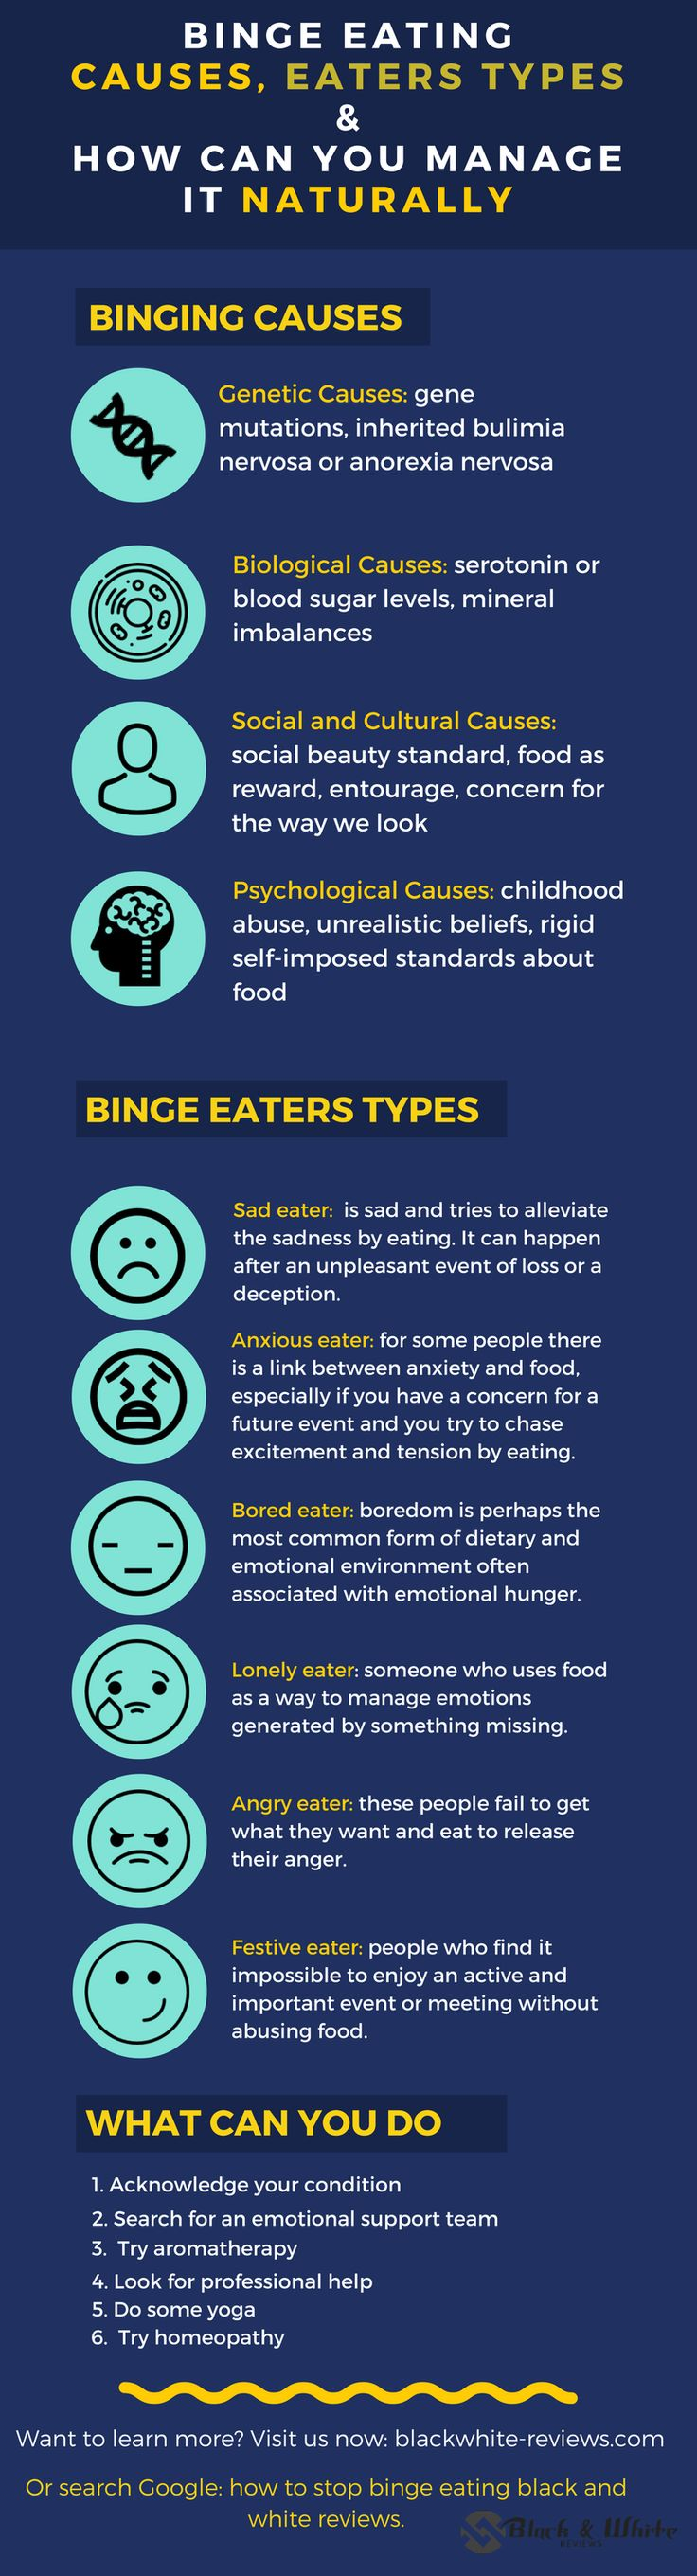 Binge Eating: Causes, Binge Eaters Types, How to stop binge eating naturally.